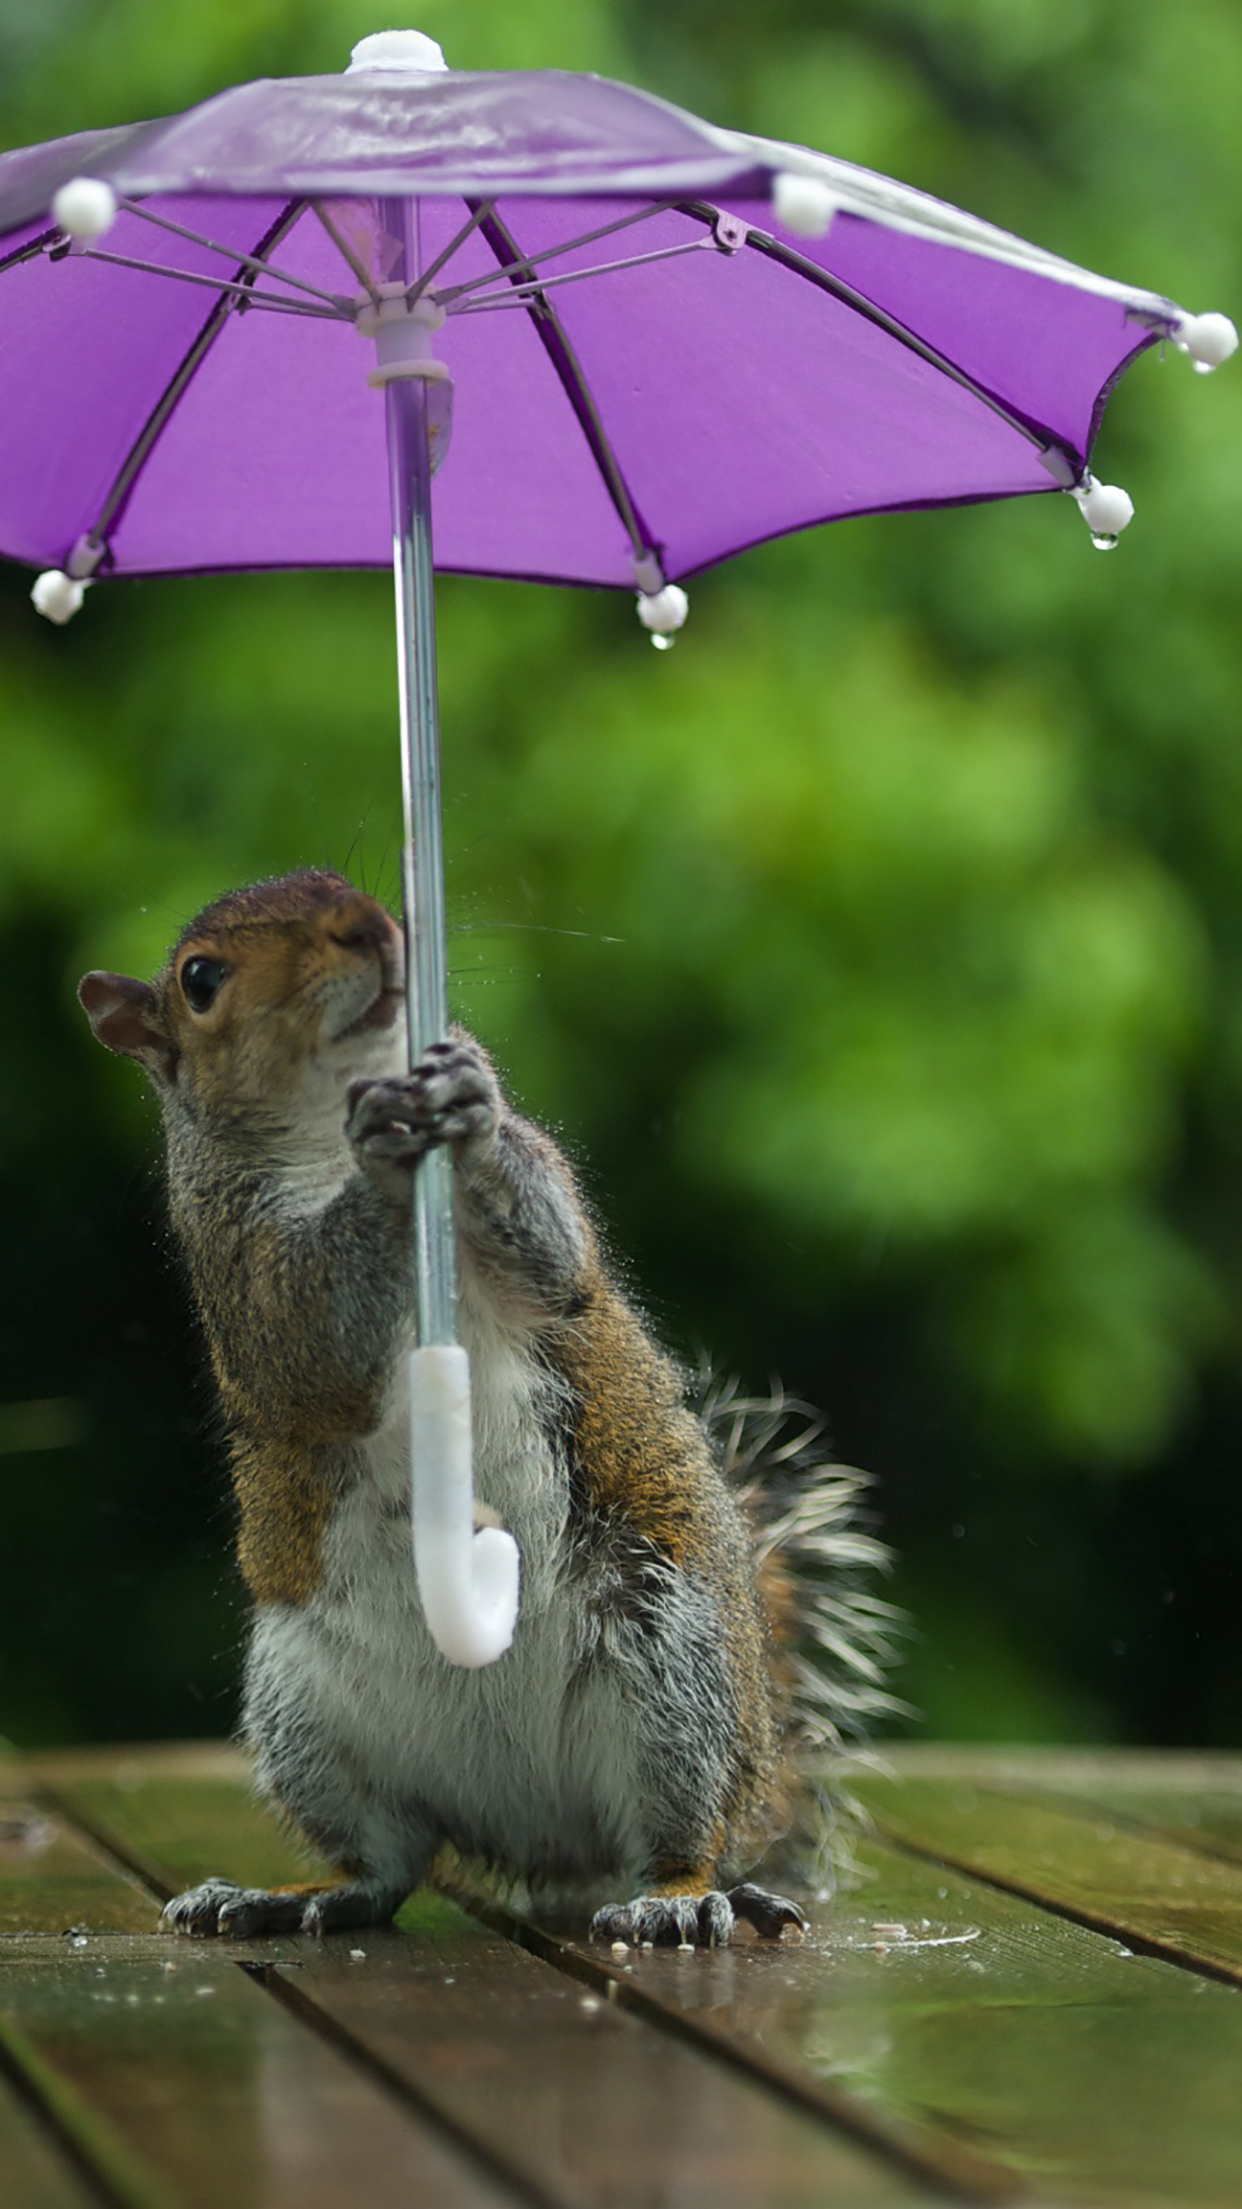 Umbrella Squirrel 3Wallpapers iPhone Parallax Les 3Wallpapers iPhone du jour (13/01/2017)